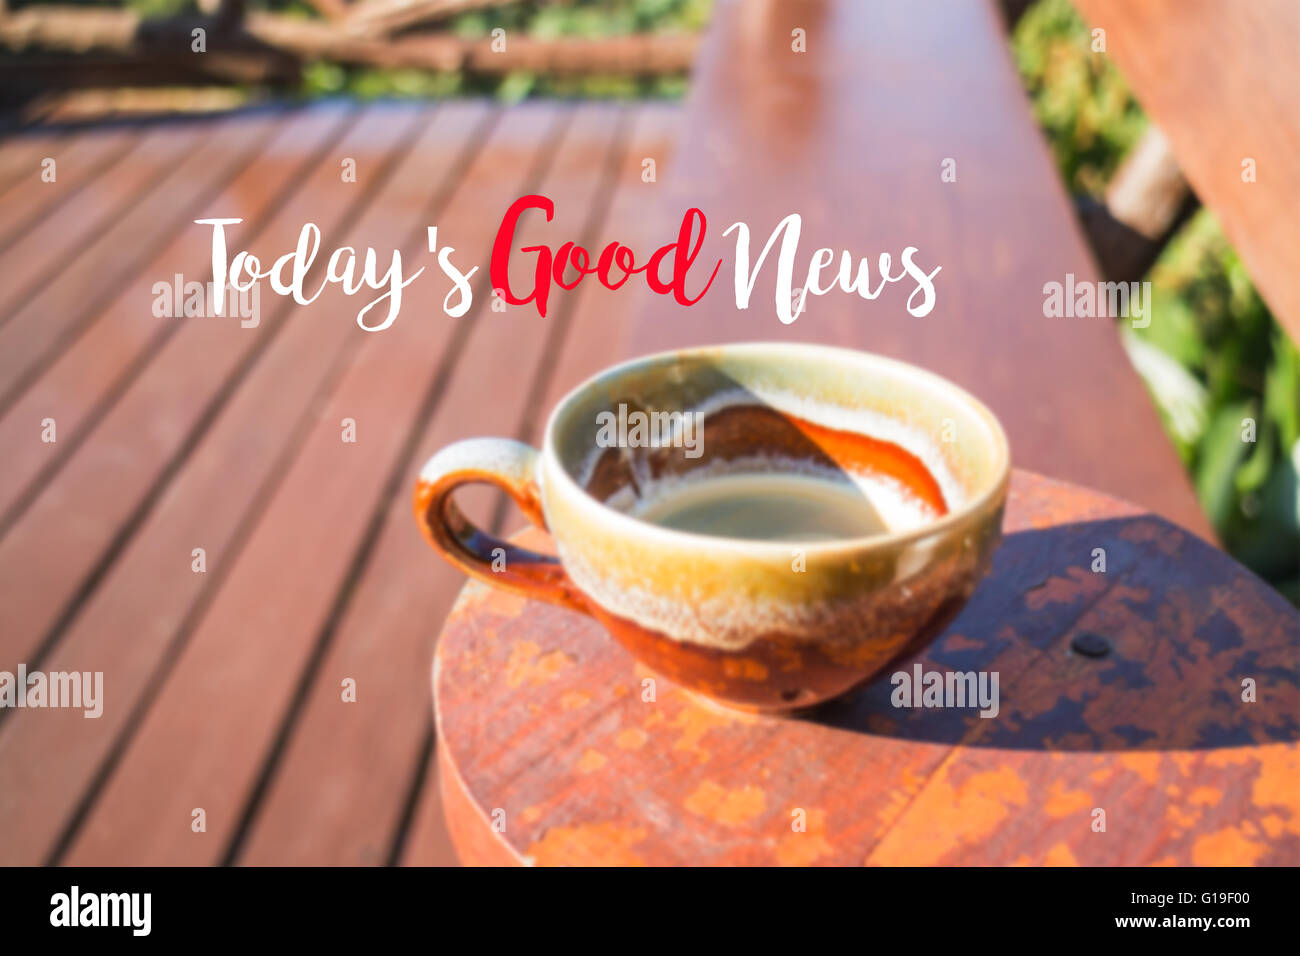 Morning Cup Of Coffee Background With Inspiration Quote, Stock Photo